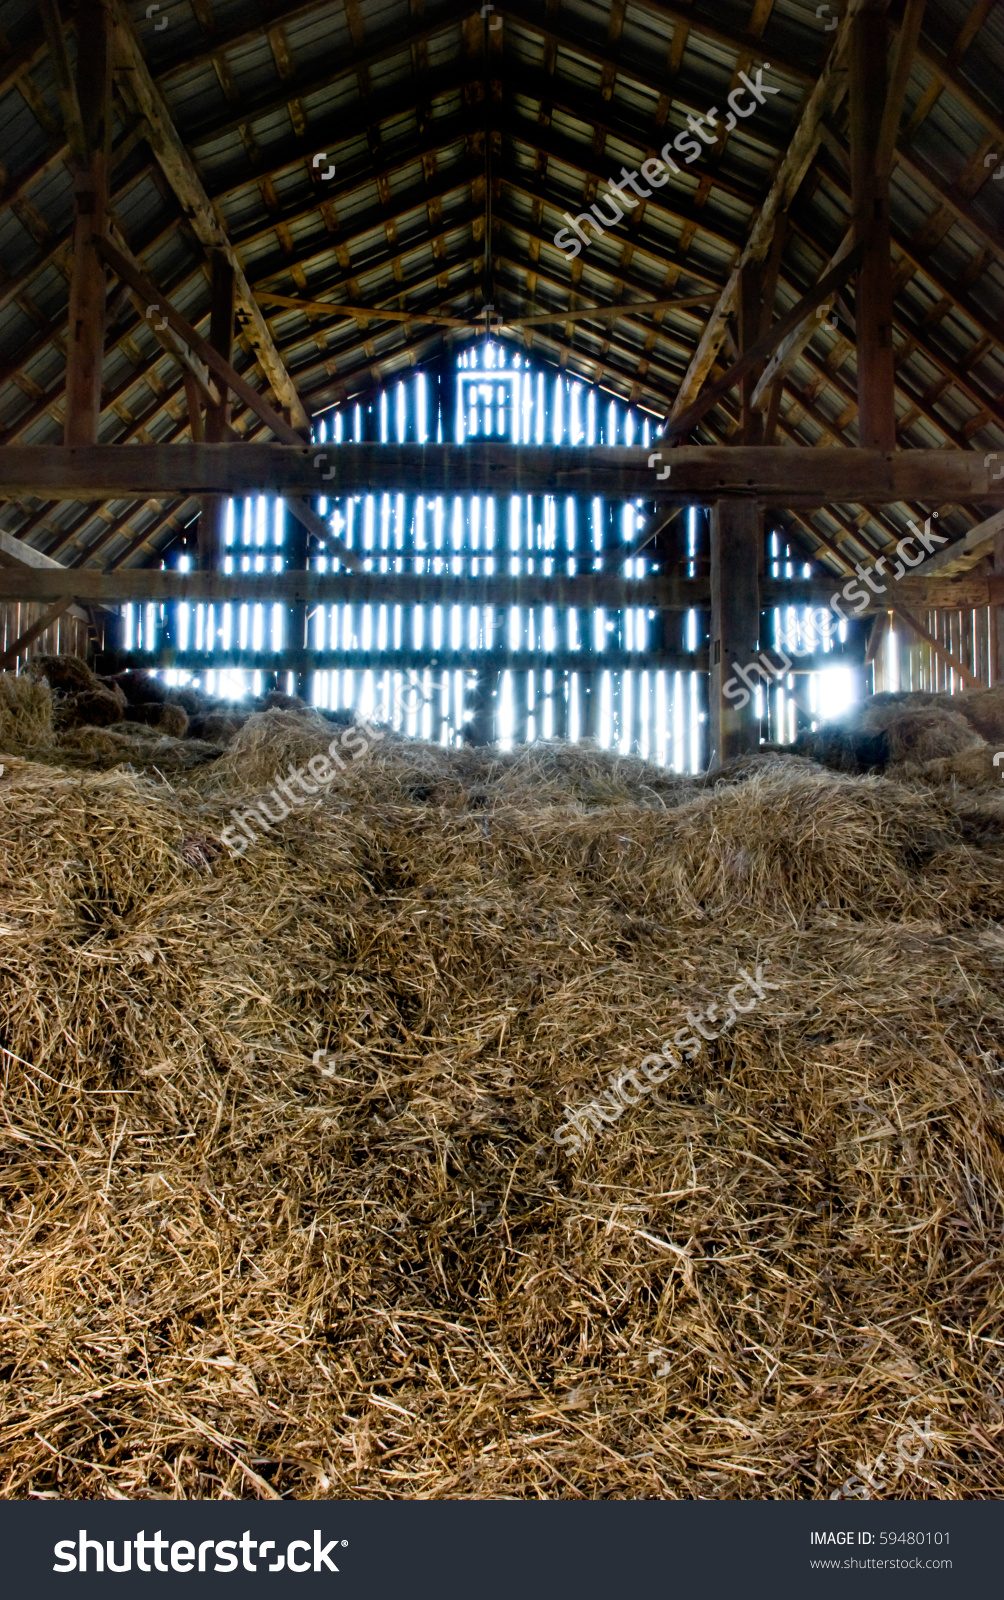 Old Wooden Barn Full Old Hay Stock Photo 59480101.